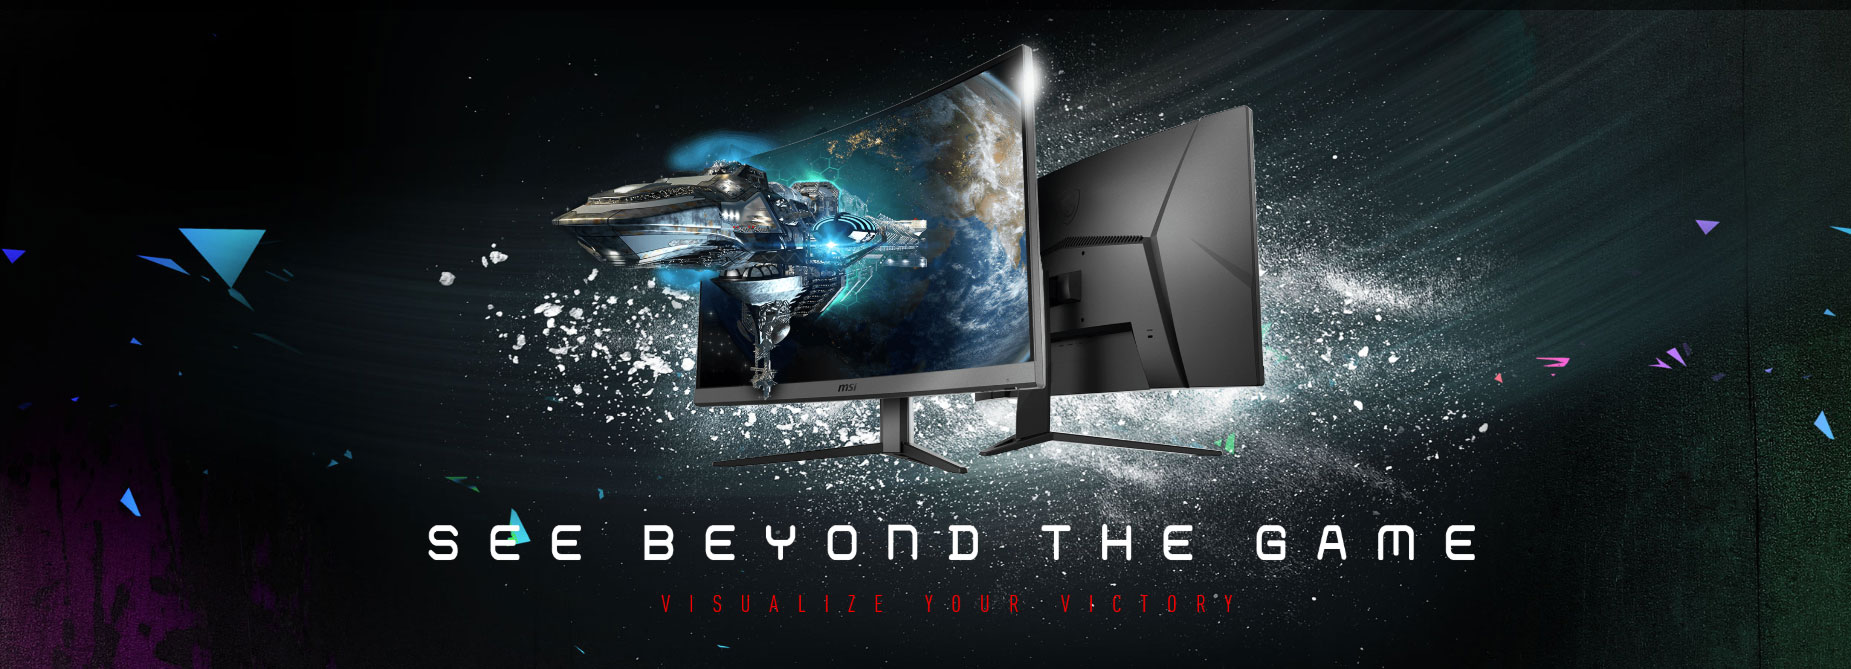 two monitors with a spaceship as screen in a black background